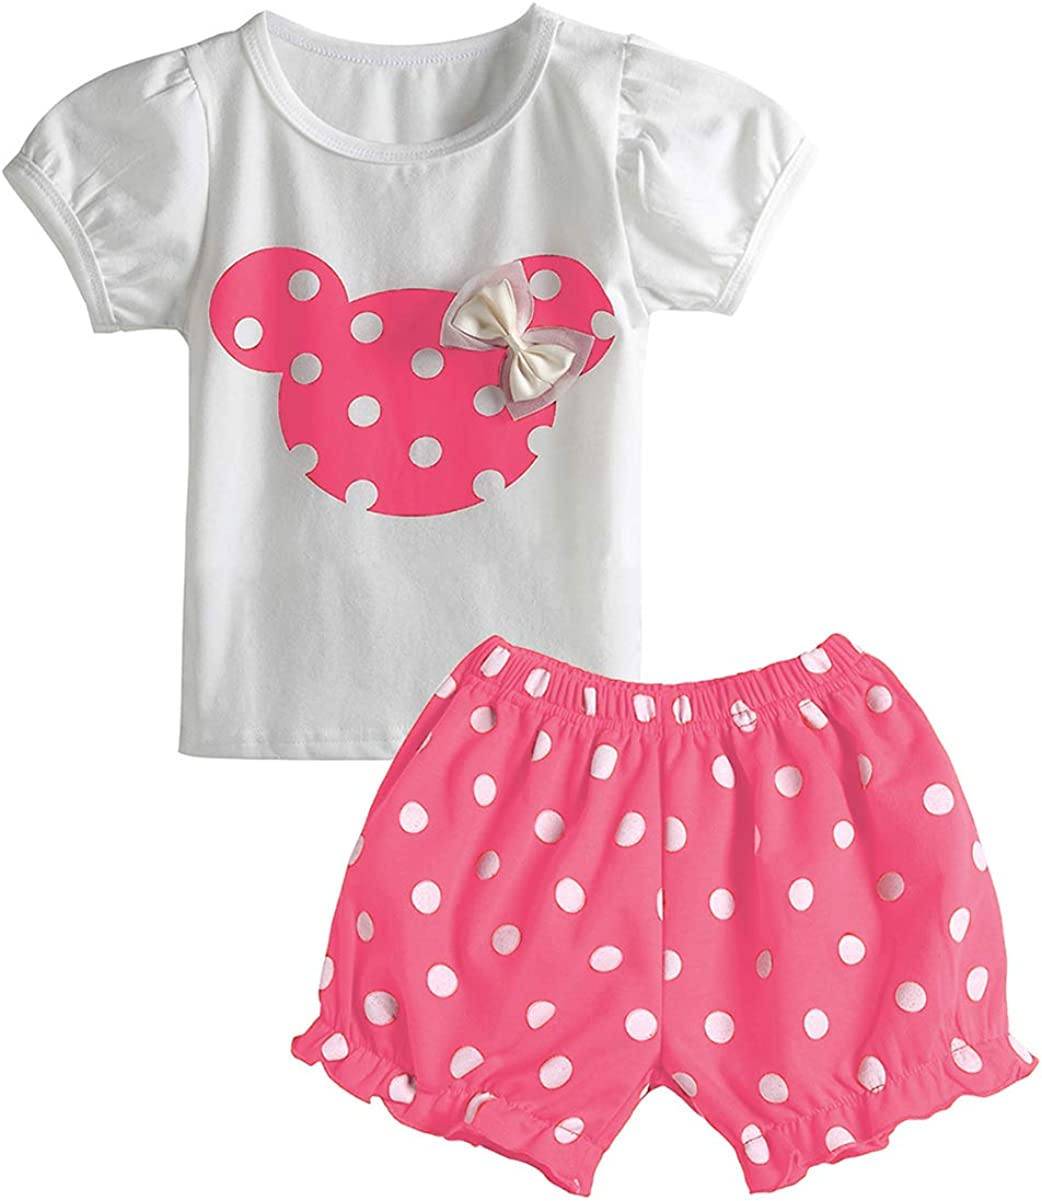 Cute Toddler Baby Girls Summer Clothes Set T-Shirt and Short Pants 2pcs Outfits